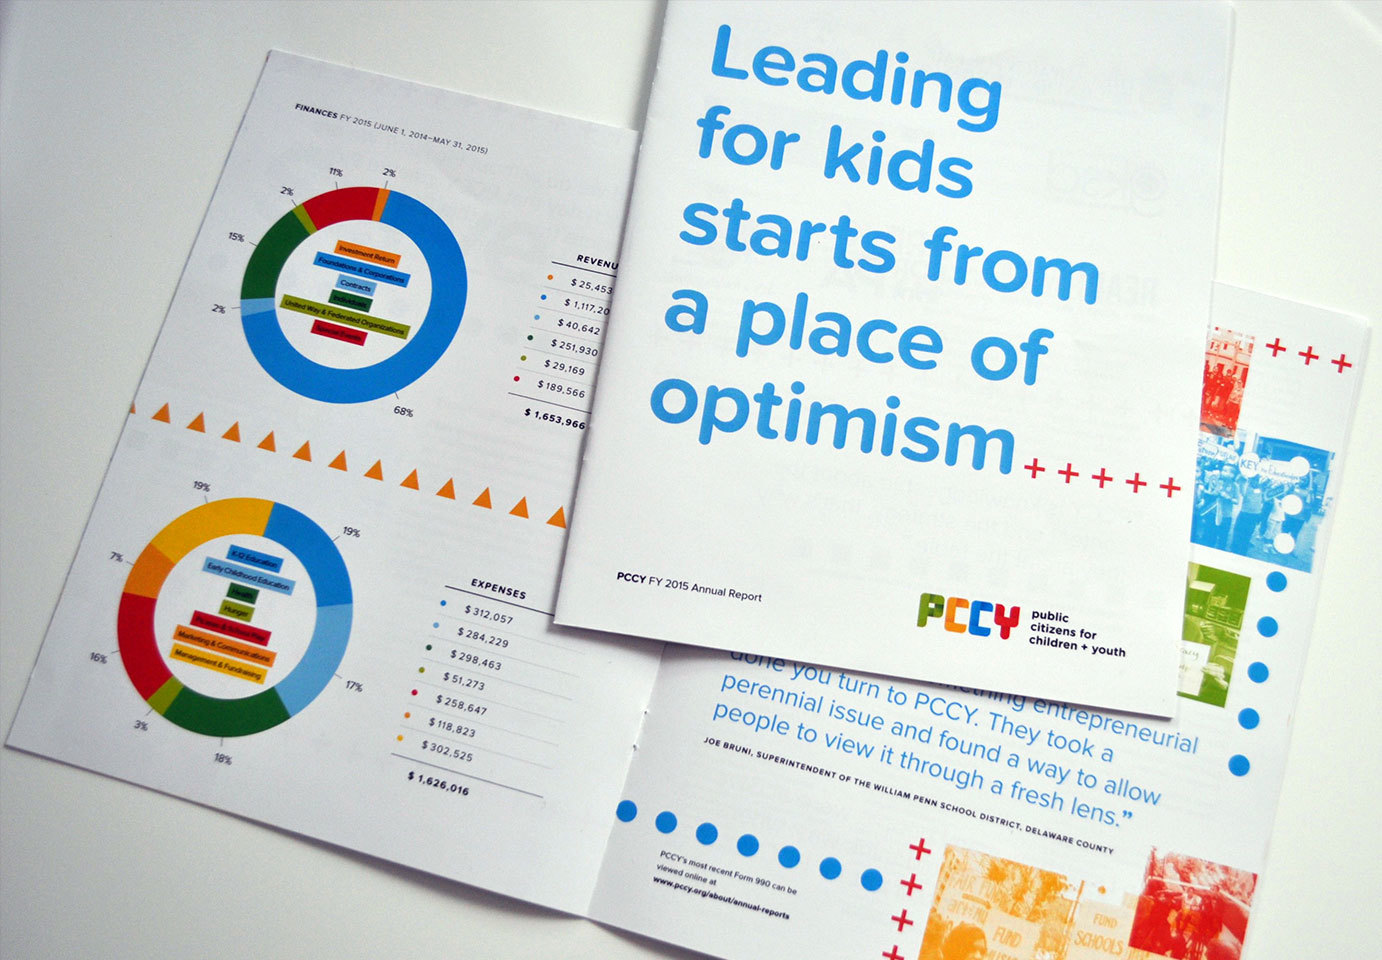 Featured Image for Public Citizen's for Children & Youth Identity Design Project